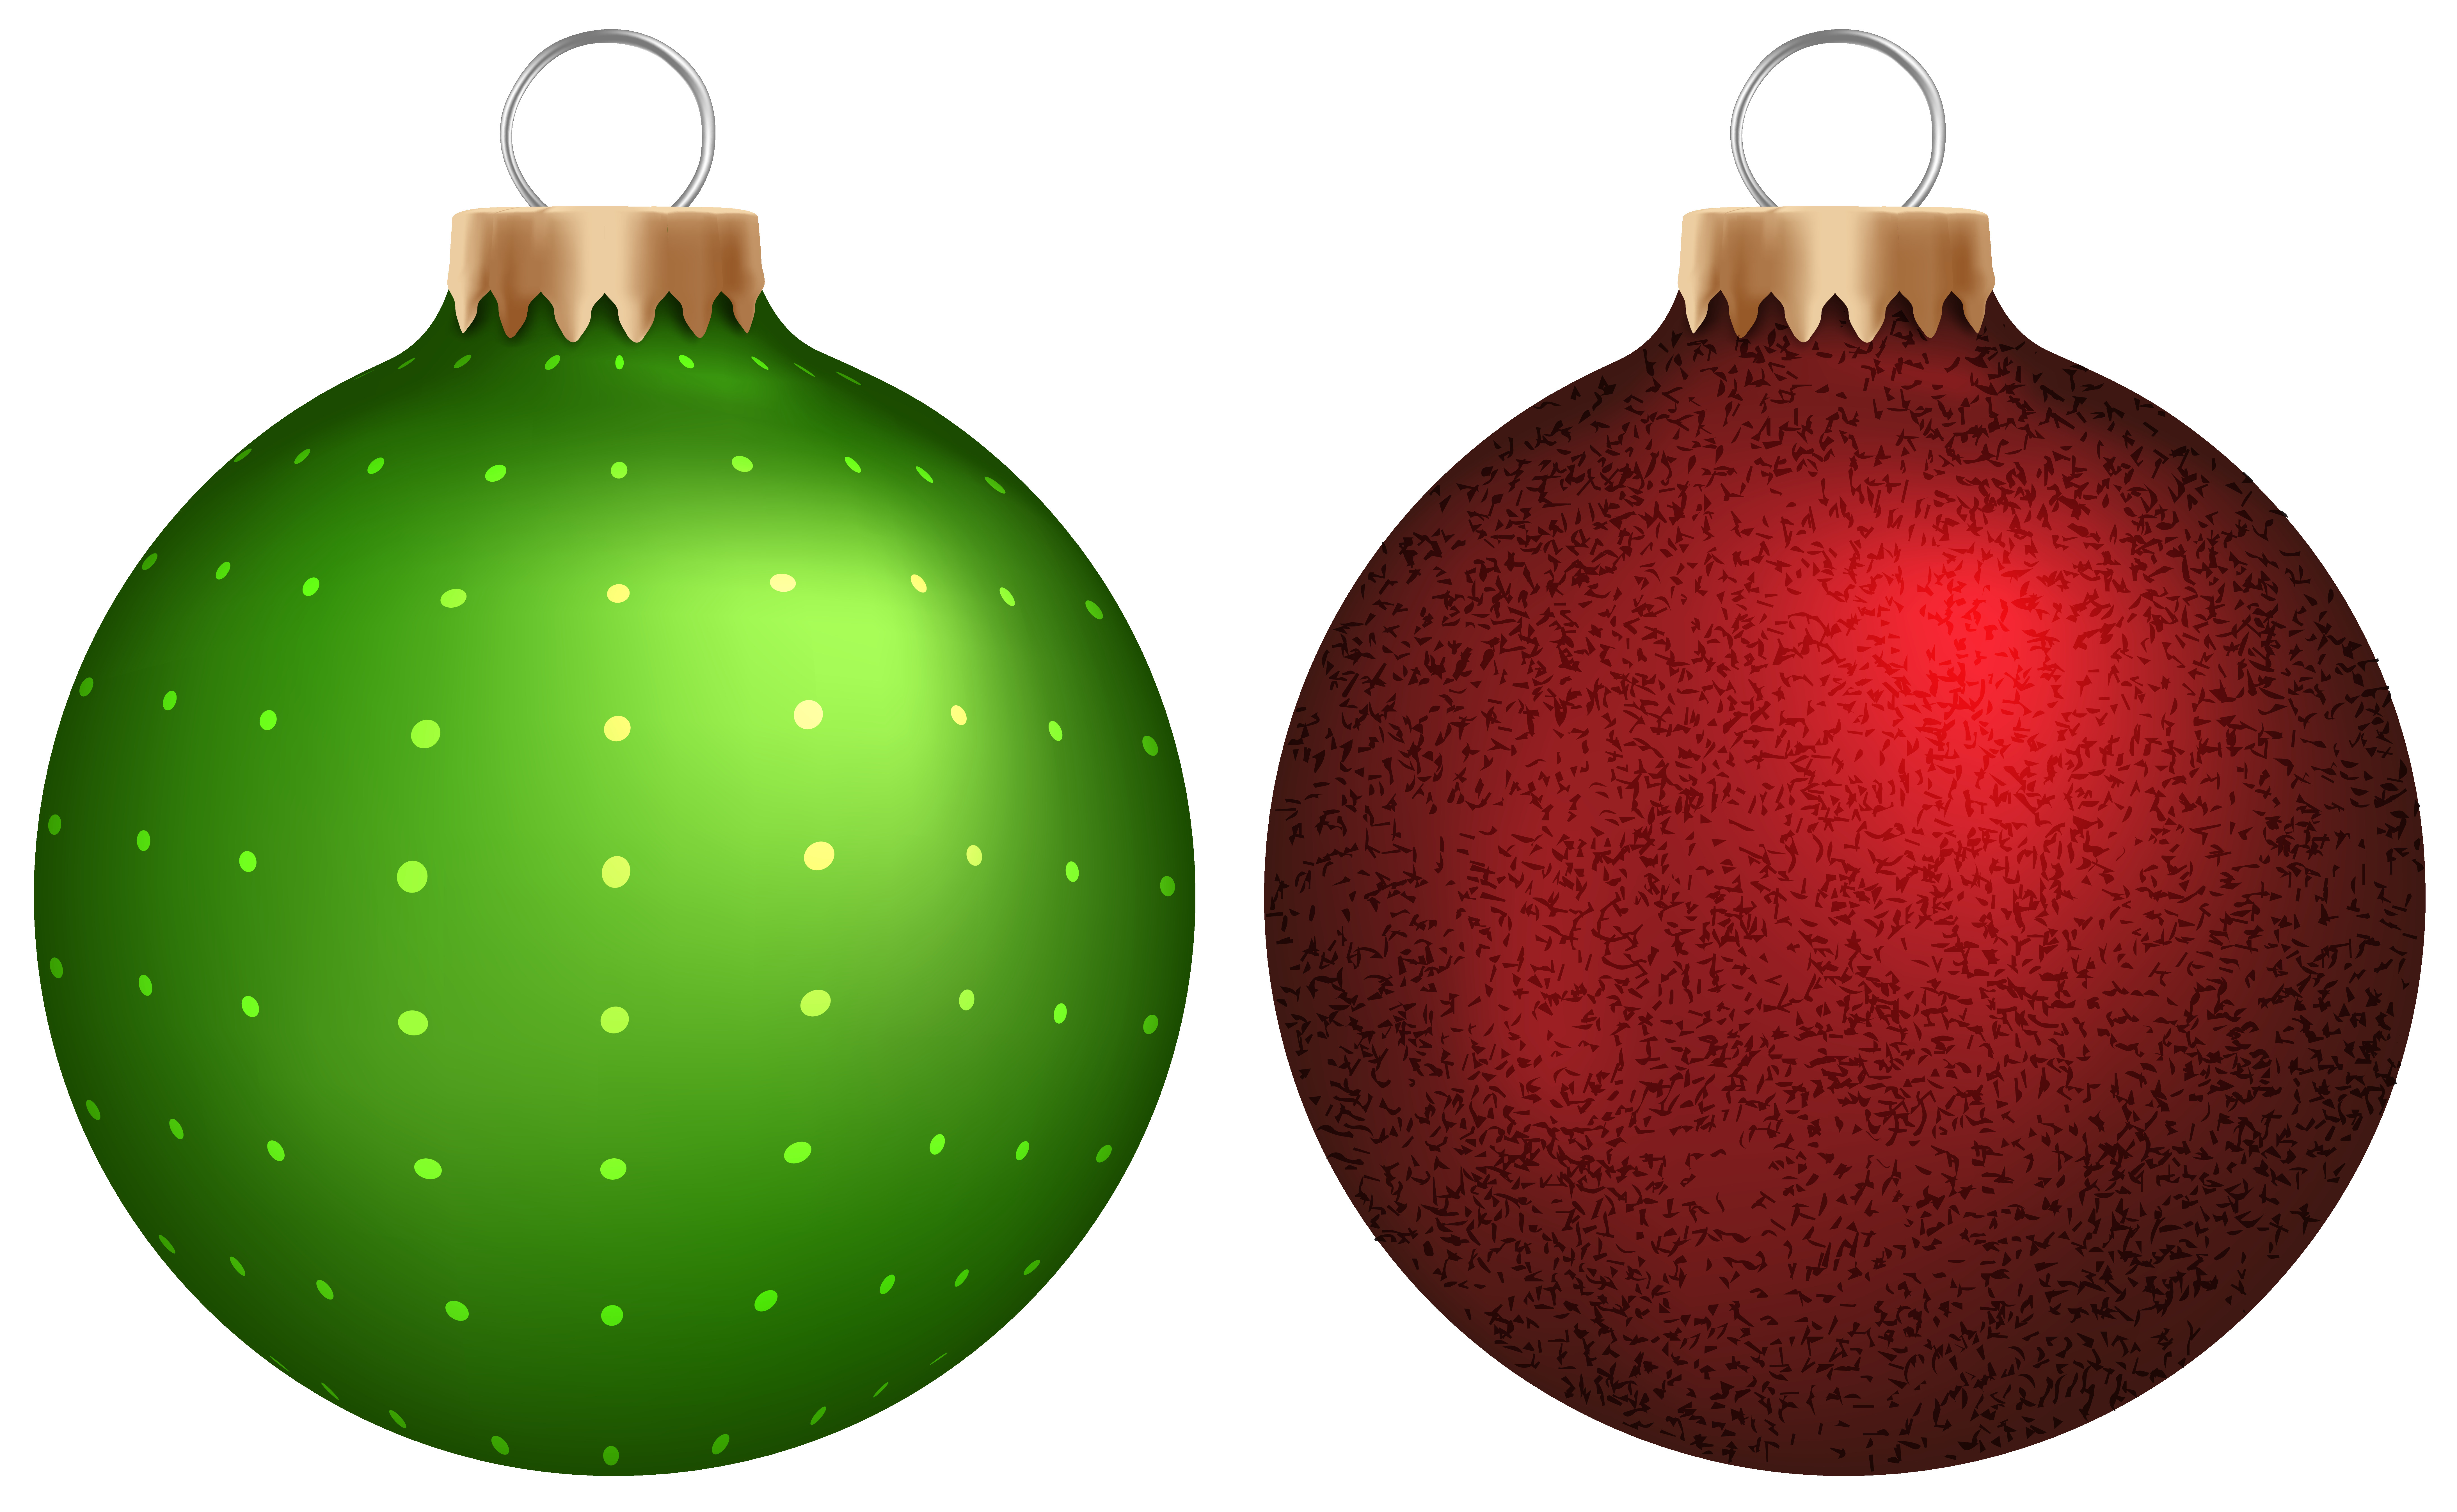 Red Christmas Balls Best Of Red and Green Christmas ornaments Clipart 33 Of Luxury 40 Pictures Red Christmas Balls